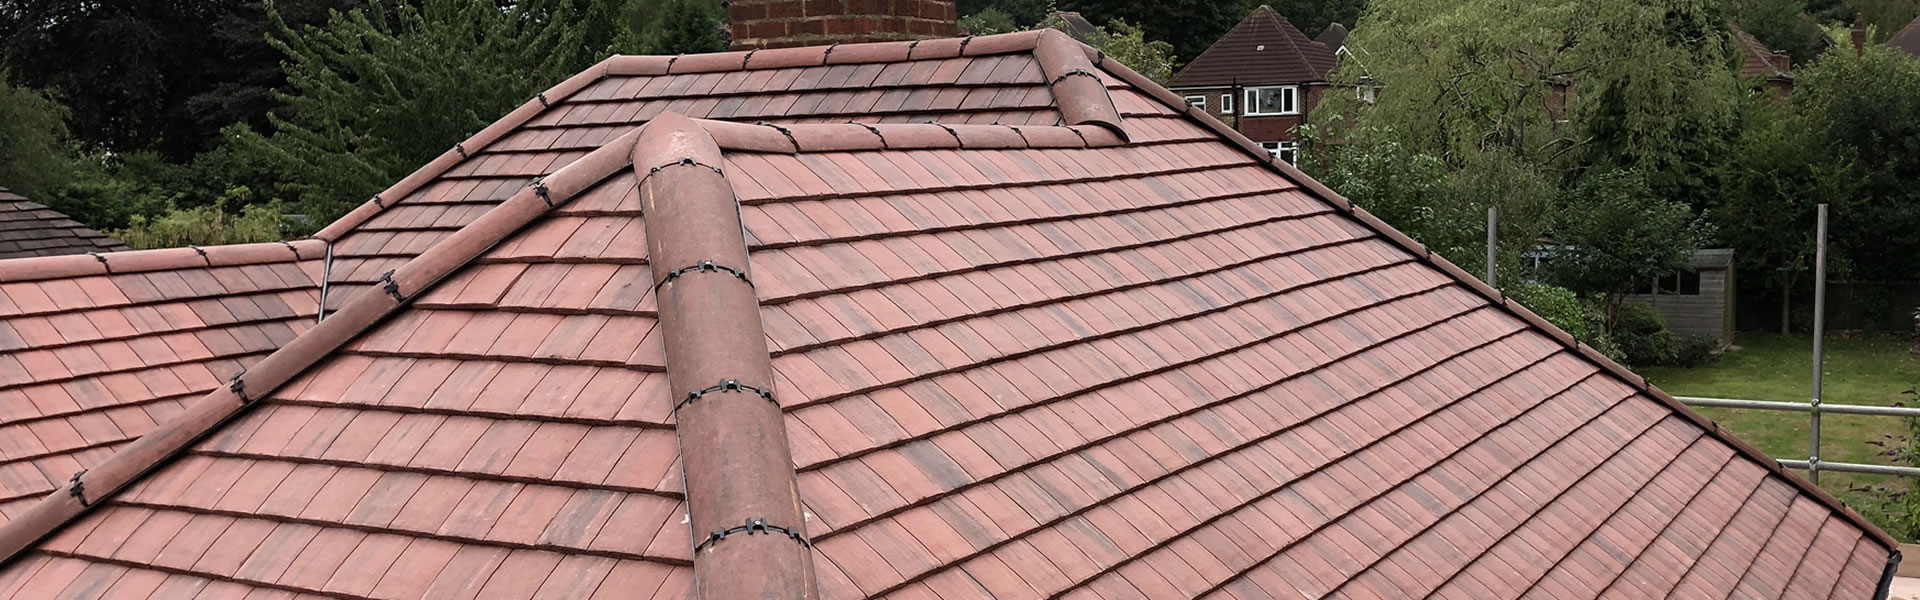 Roofers near Walsall, Wednesbury, West Bromwich, Great Barr, Sutton Coldfield, Cannock & surrounding areas